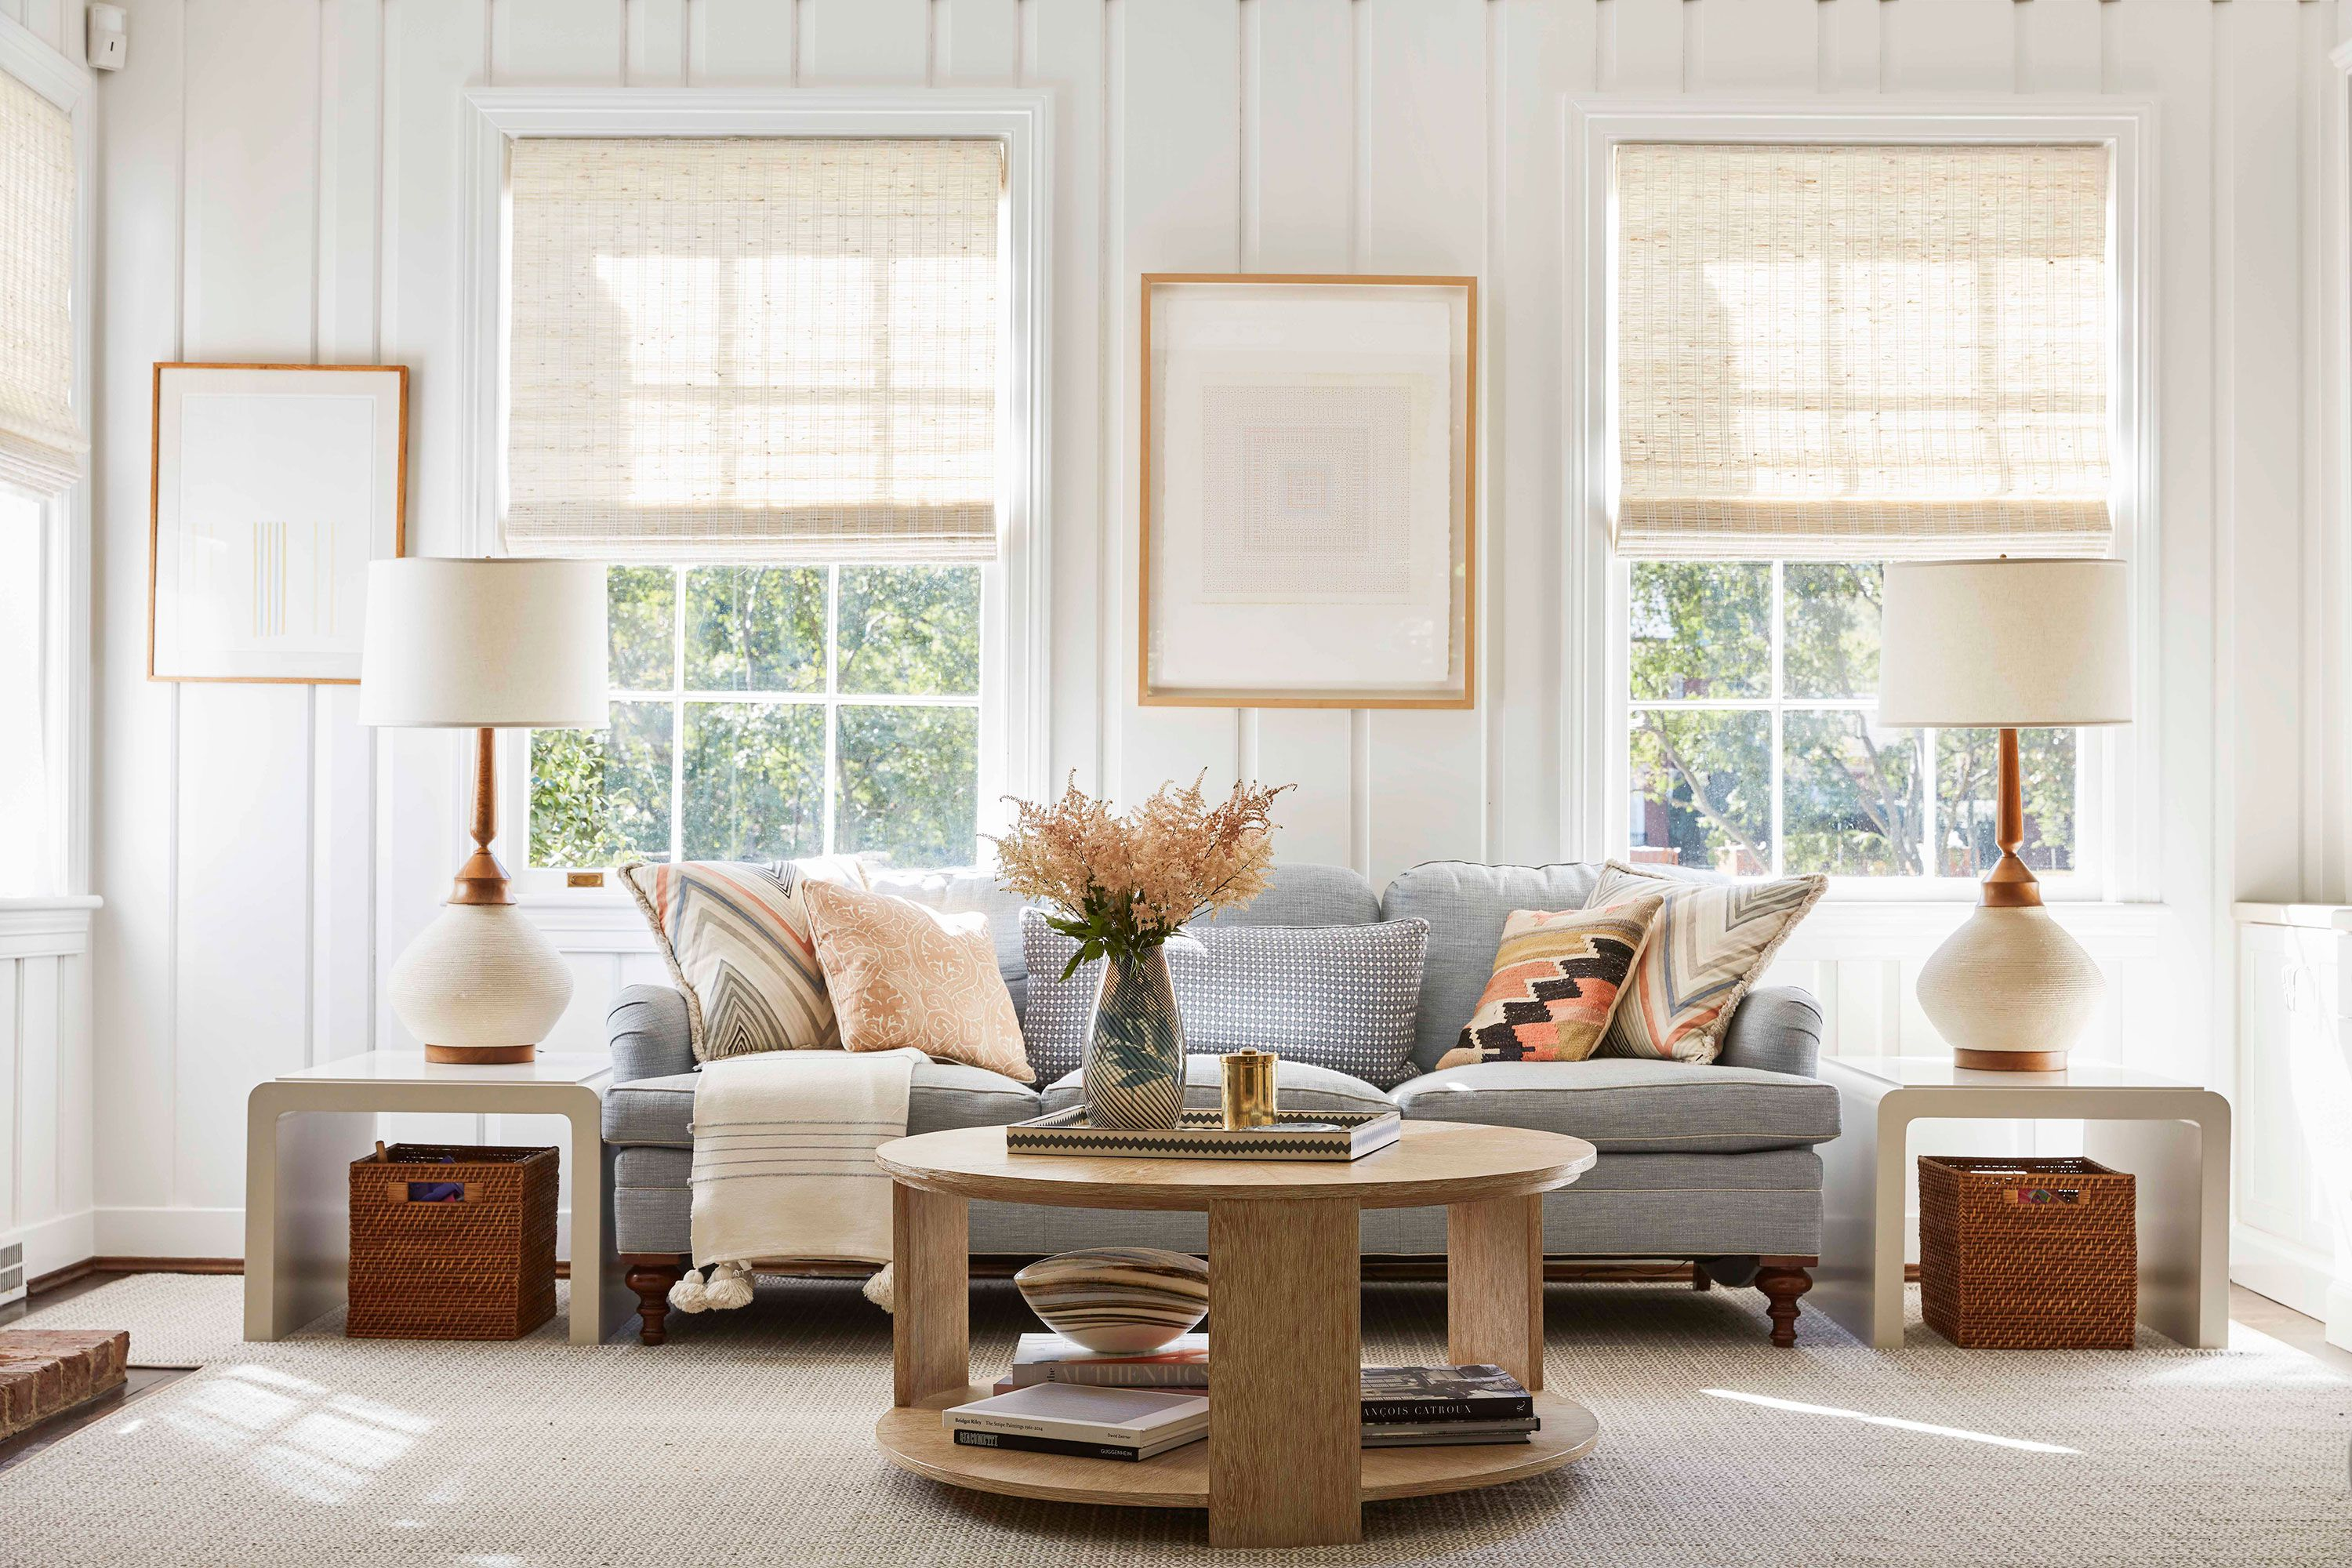 16 Best Small Living Room Ideas - How to Decorate a Small Living Room